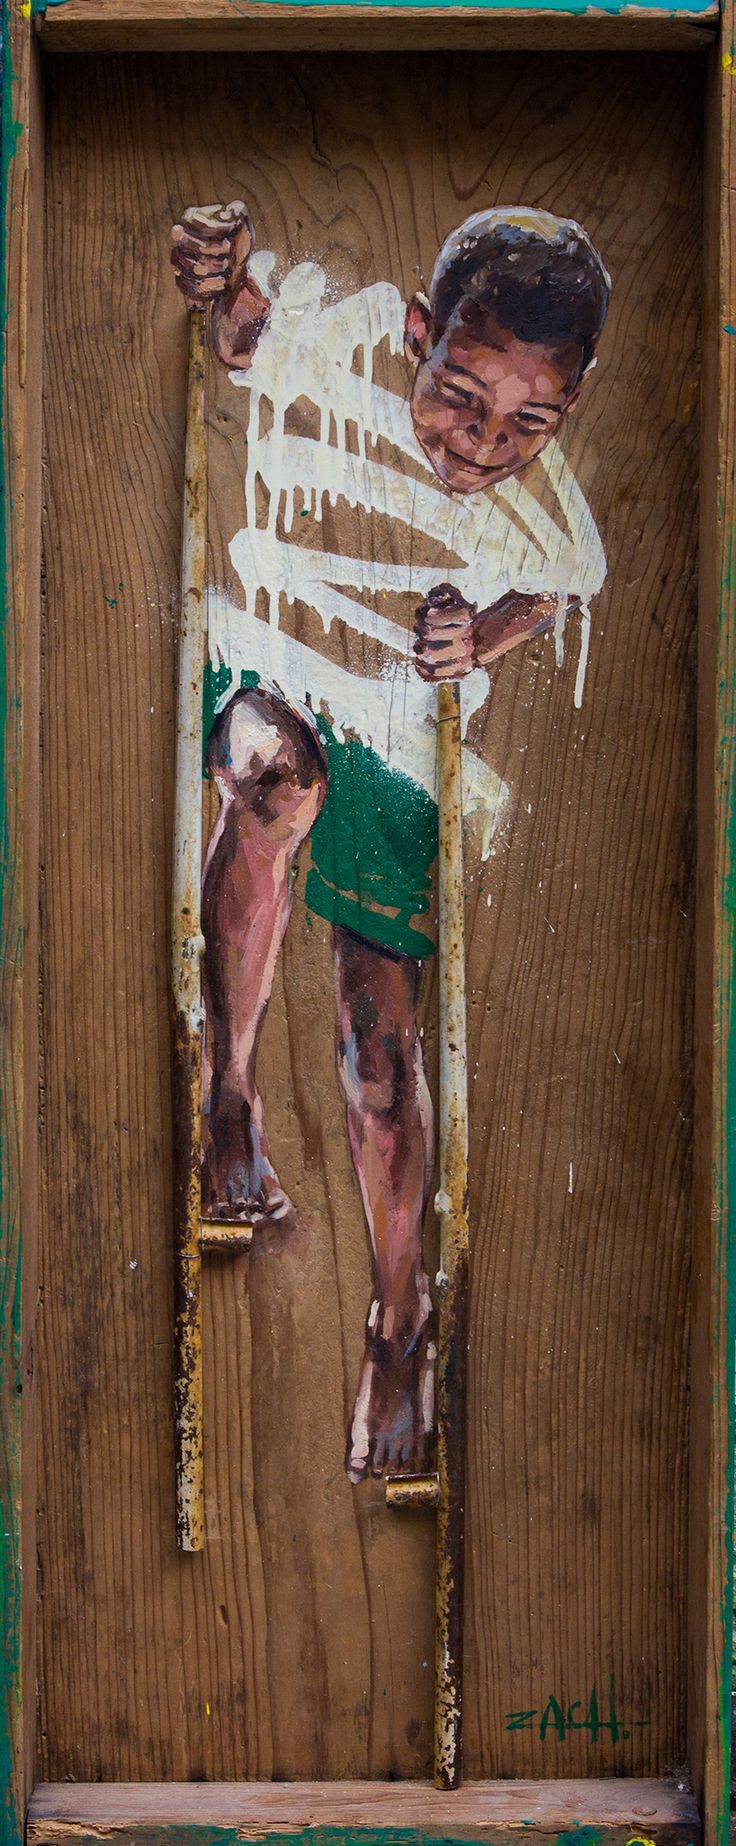 Boy on stilts, mixed media on found object, 2015  inspired by an original martha cooper photograph from Haïti